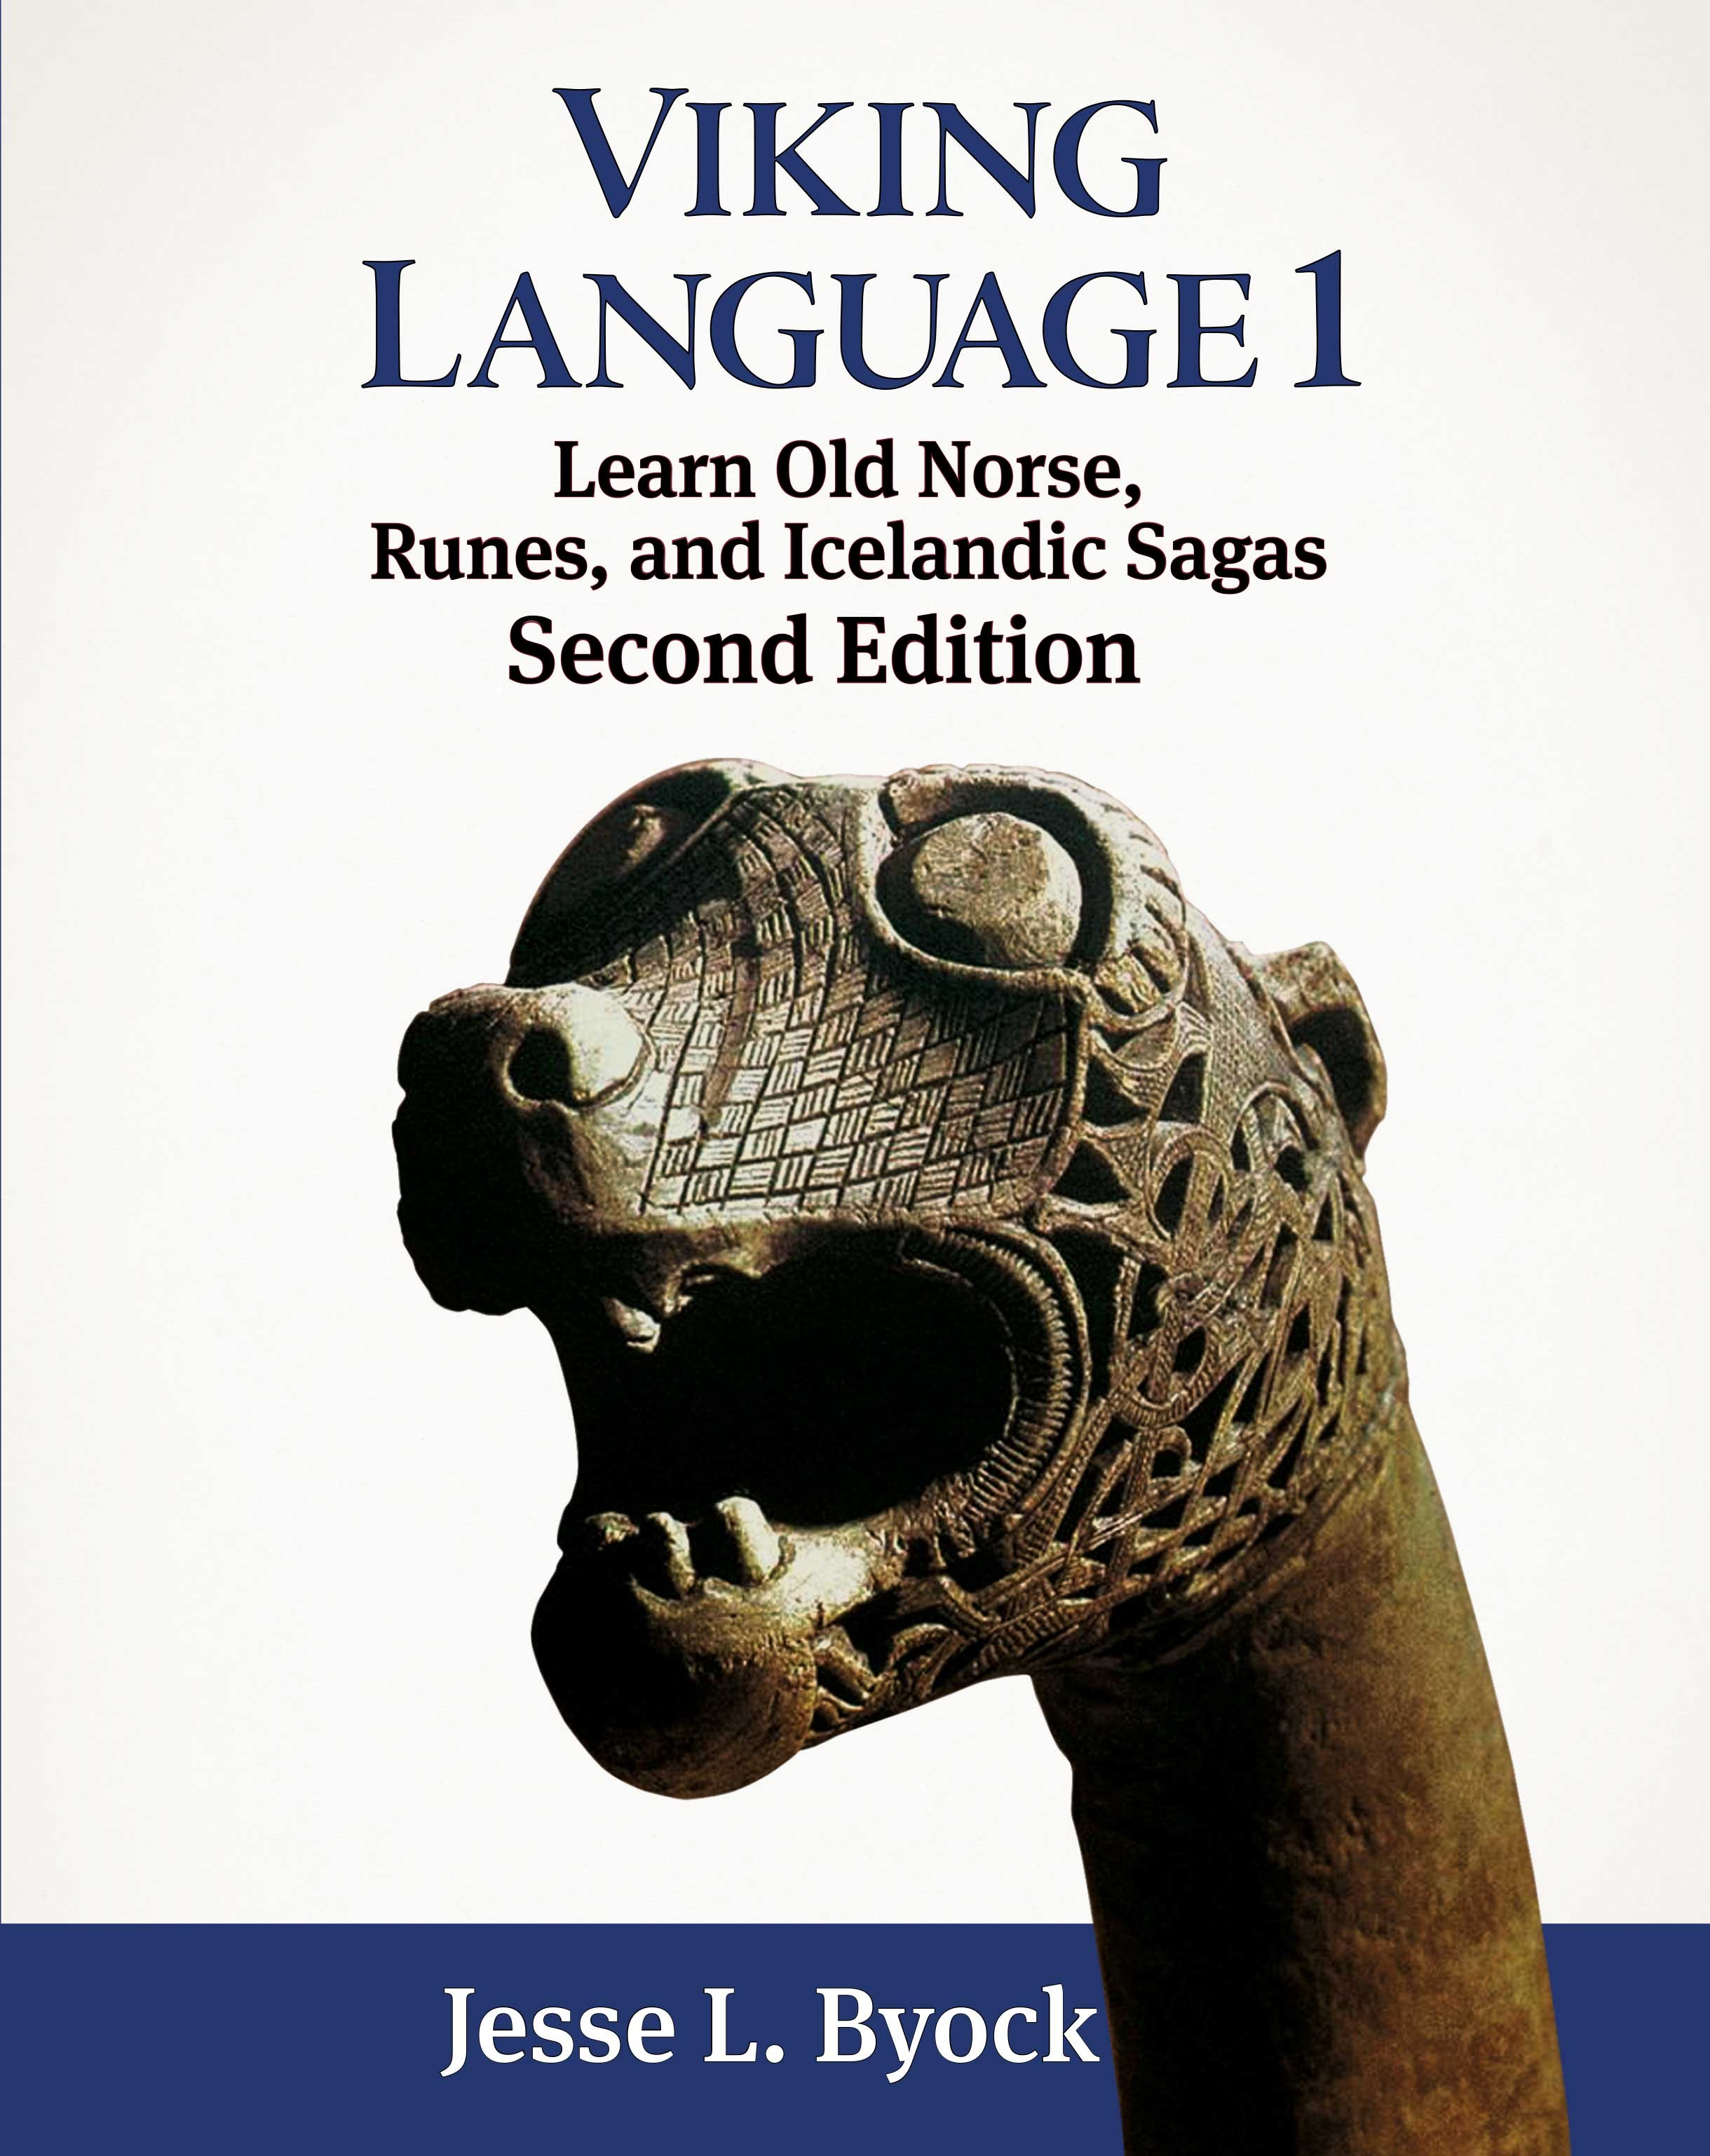 https://www.amazon.com/Viking-Language-Learn-Norse-Icelandic/dp/1480216445/ref=sr_1_8?s=books&ie=UTF8&qid=1363891988&sr=1-8&keywords=jesse+byock